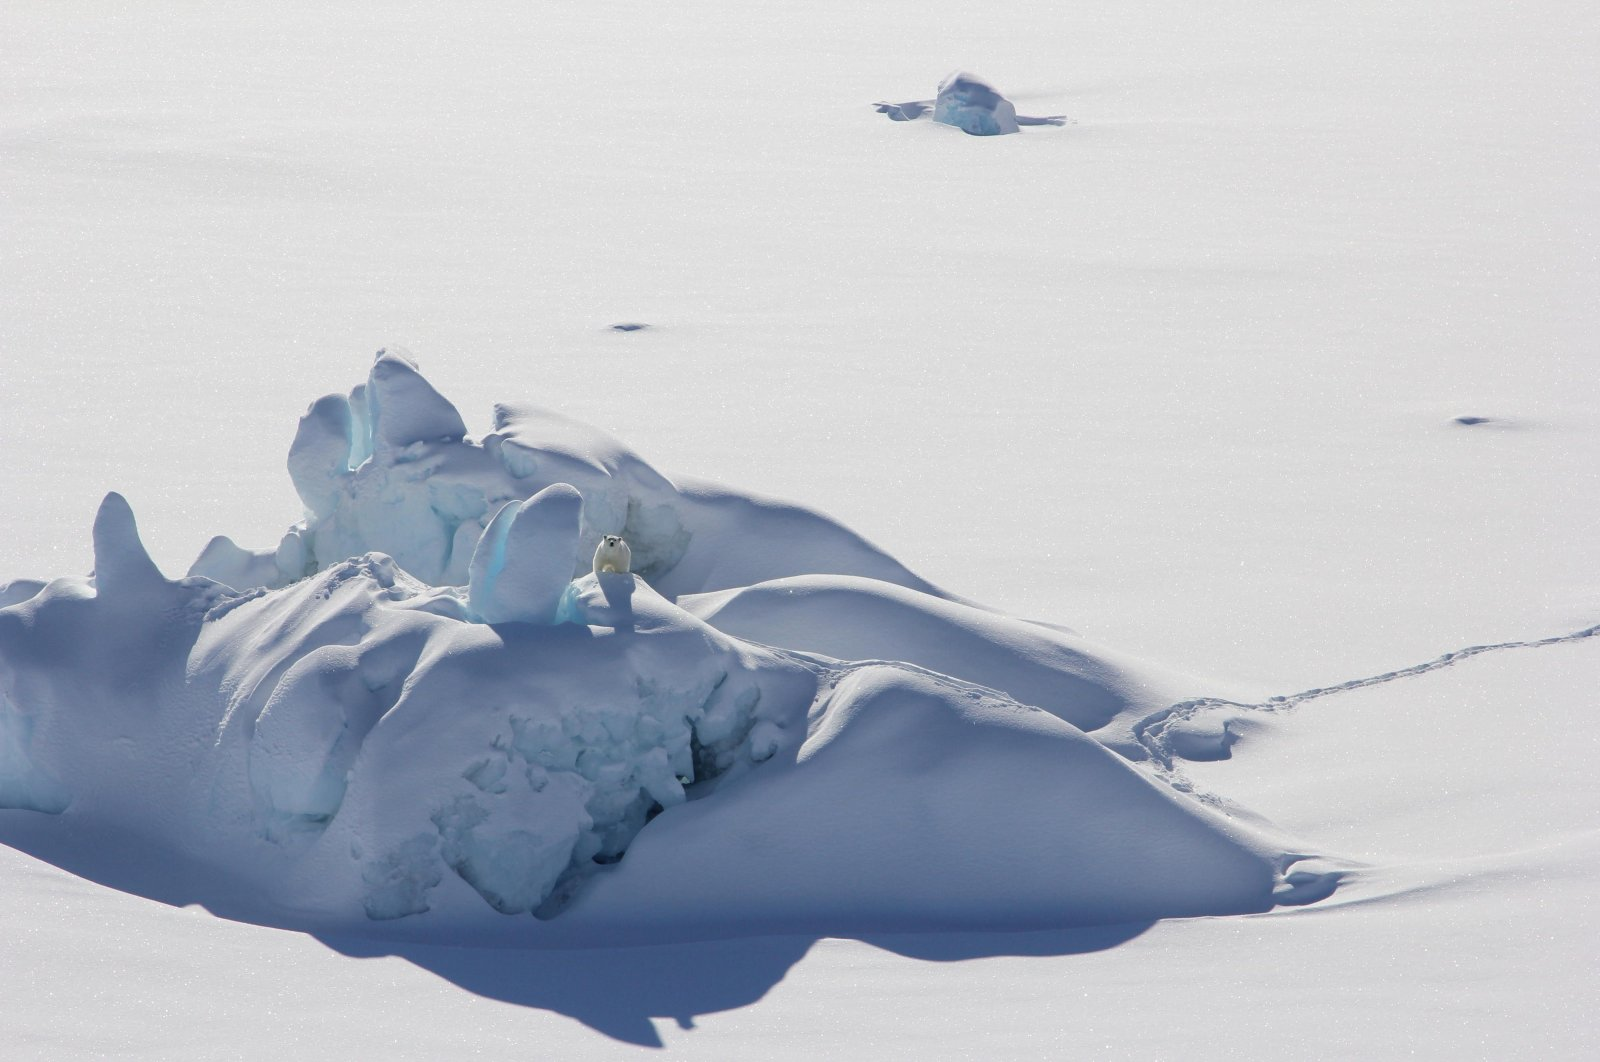 A lone polar bear atop a snow-covered iceberg in the Wandel Sea, Greenland, July 1, 2021. (AFP Photo)